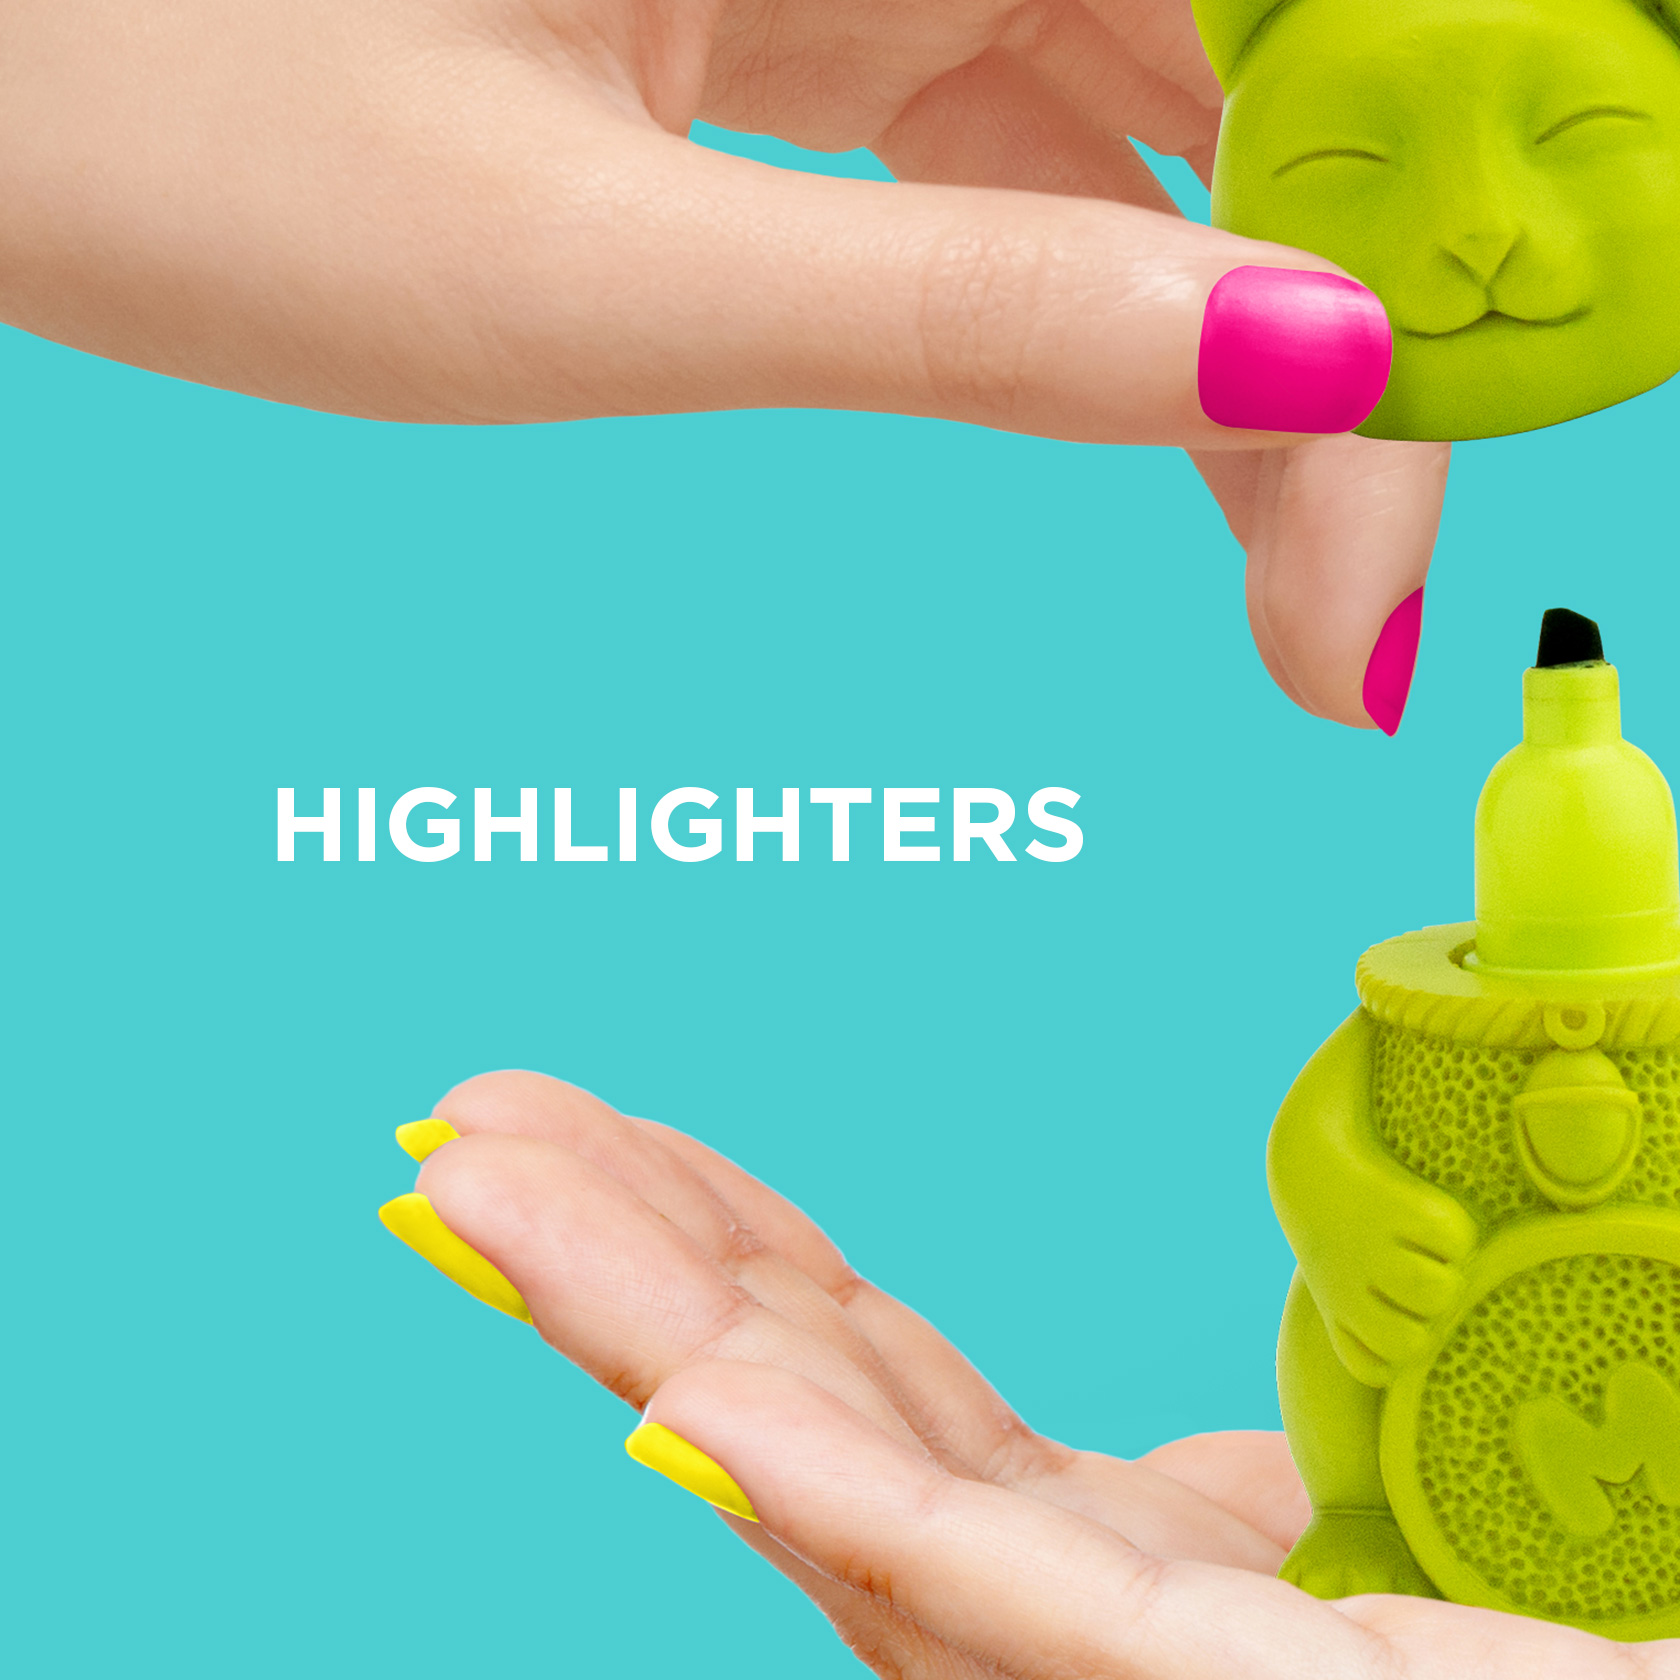 Buy our range of cool highlighters from justmustard.com